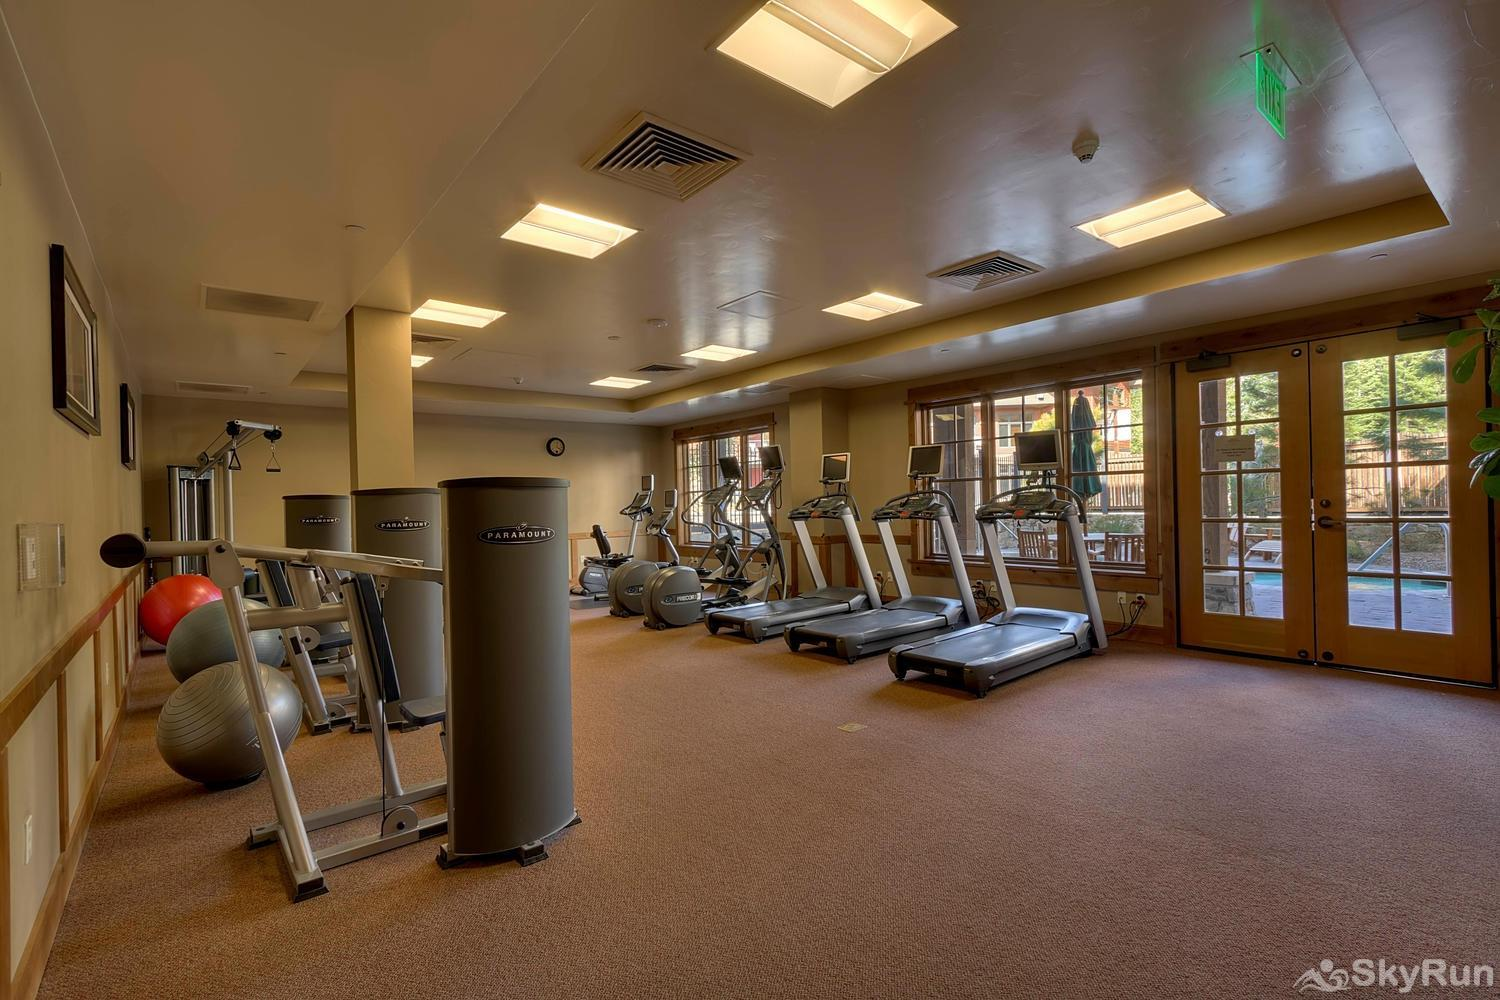 Catamount 306 - In the Heart of Northstar Resort Cardio/Weight Room